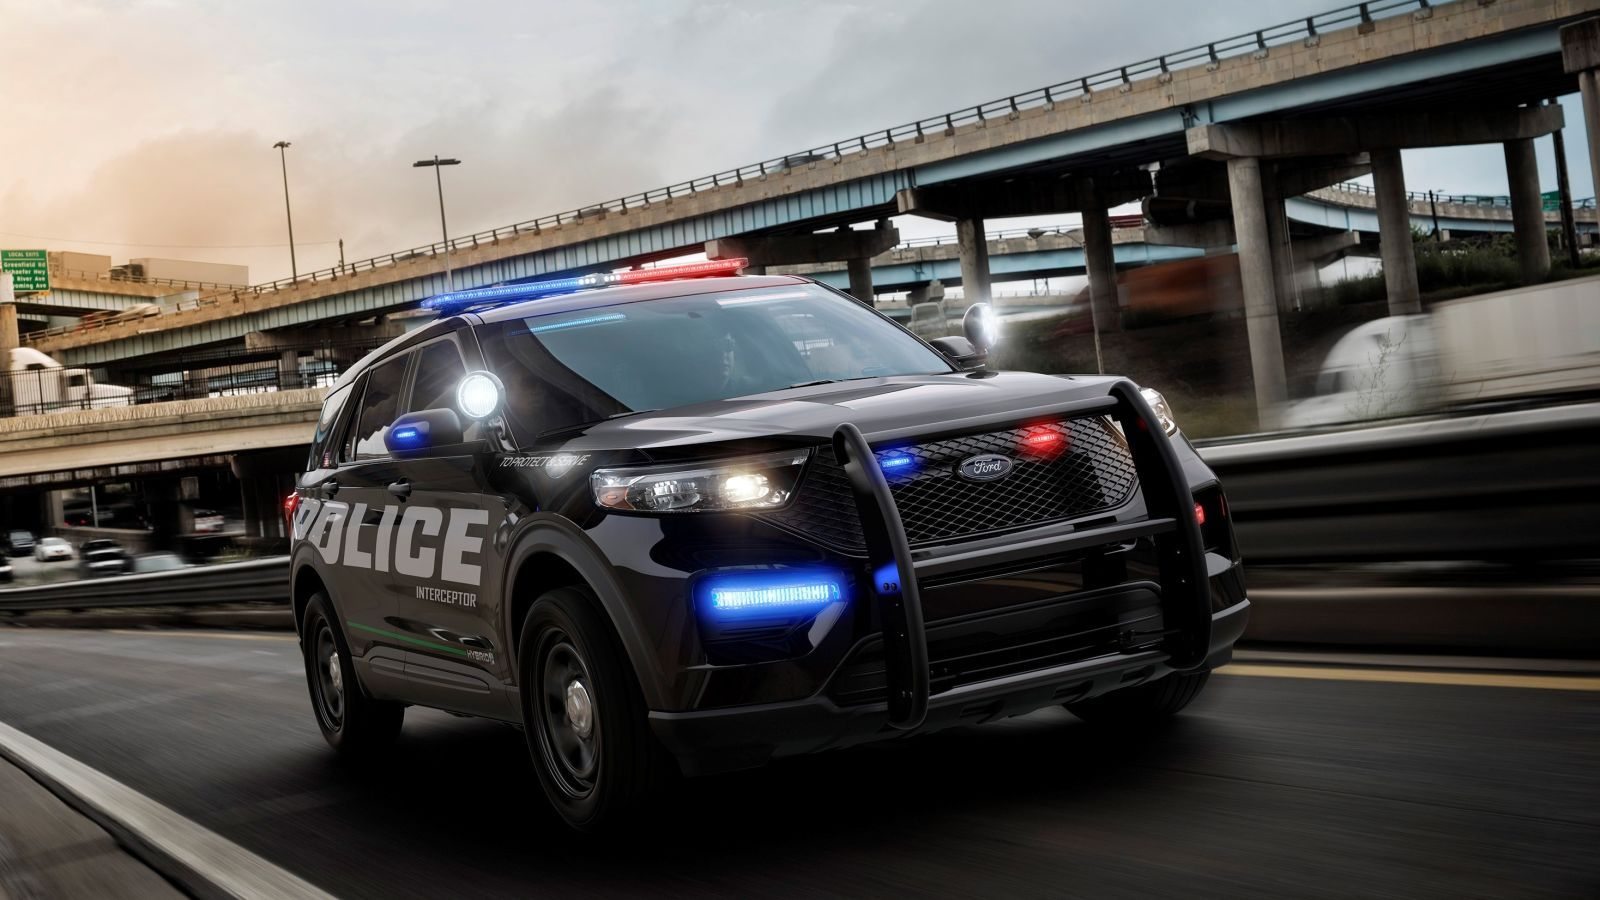 The New Hybrid Ford Police Interceptor Utility Is Going To Save Us All A Lot Of Money In 2020 Ford Police Police Cars Ford Explorer